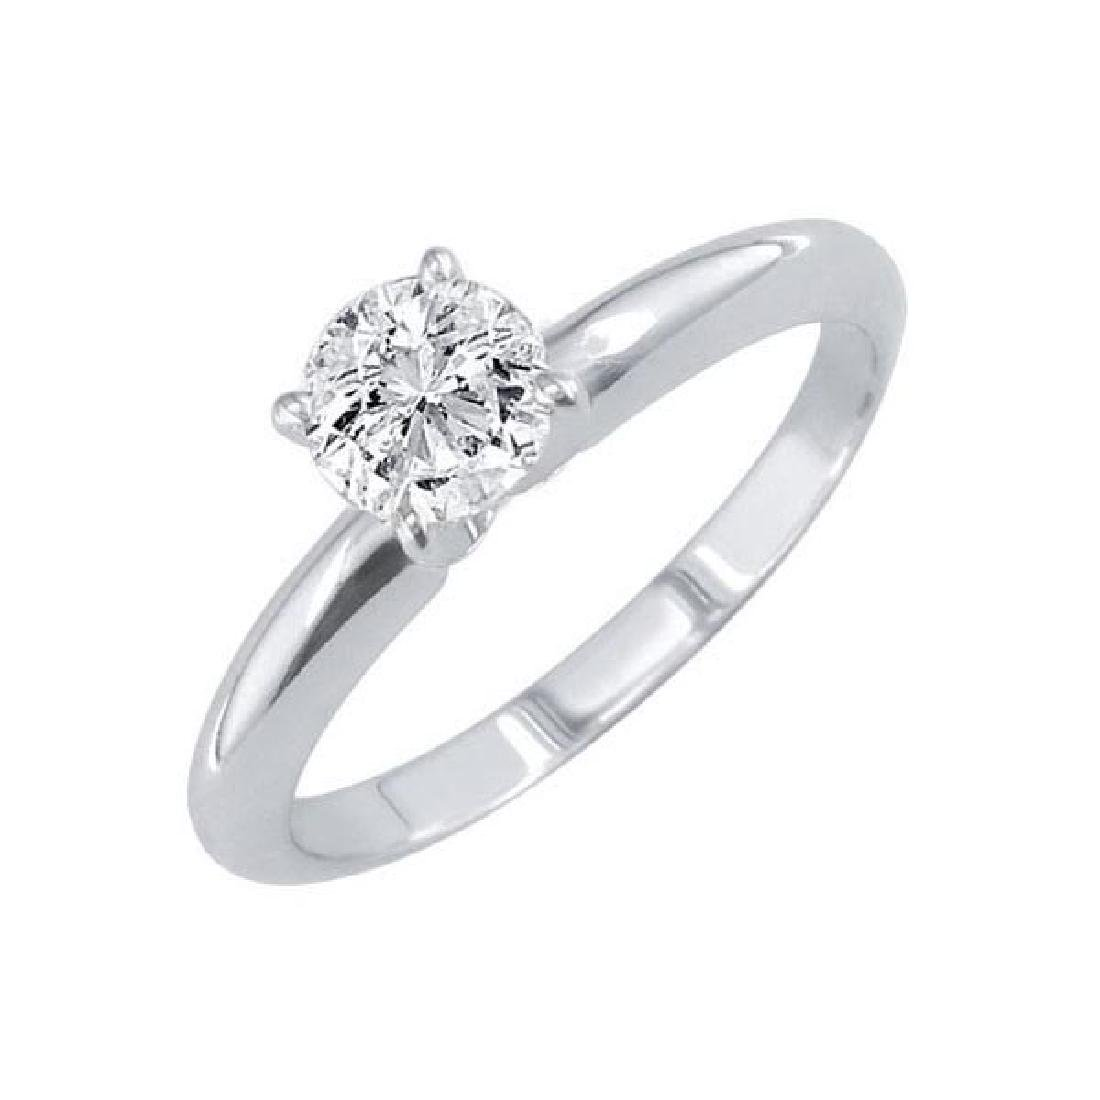 Certified 1.1 CTW Round Diamond Solitaire 14k Ring D/SI